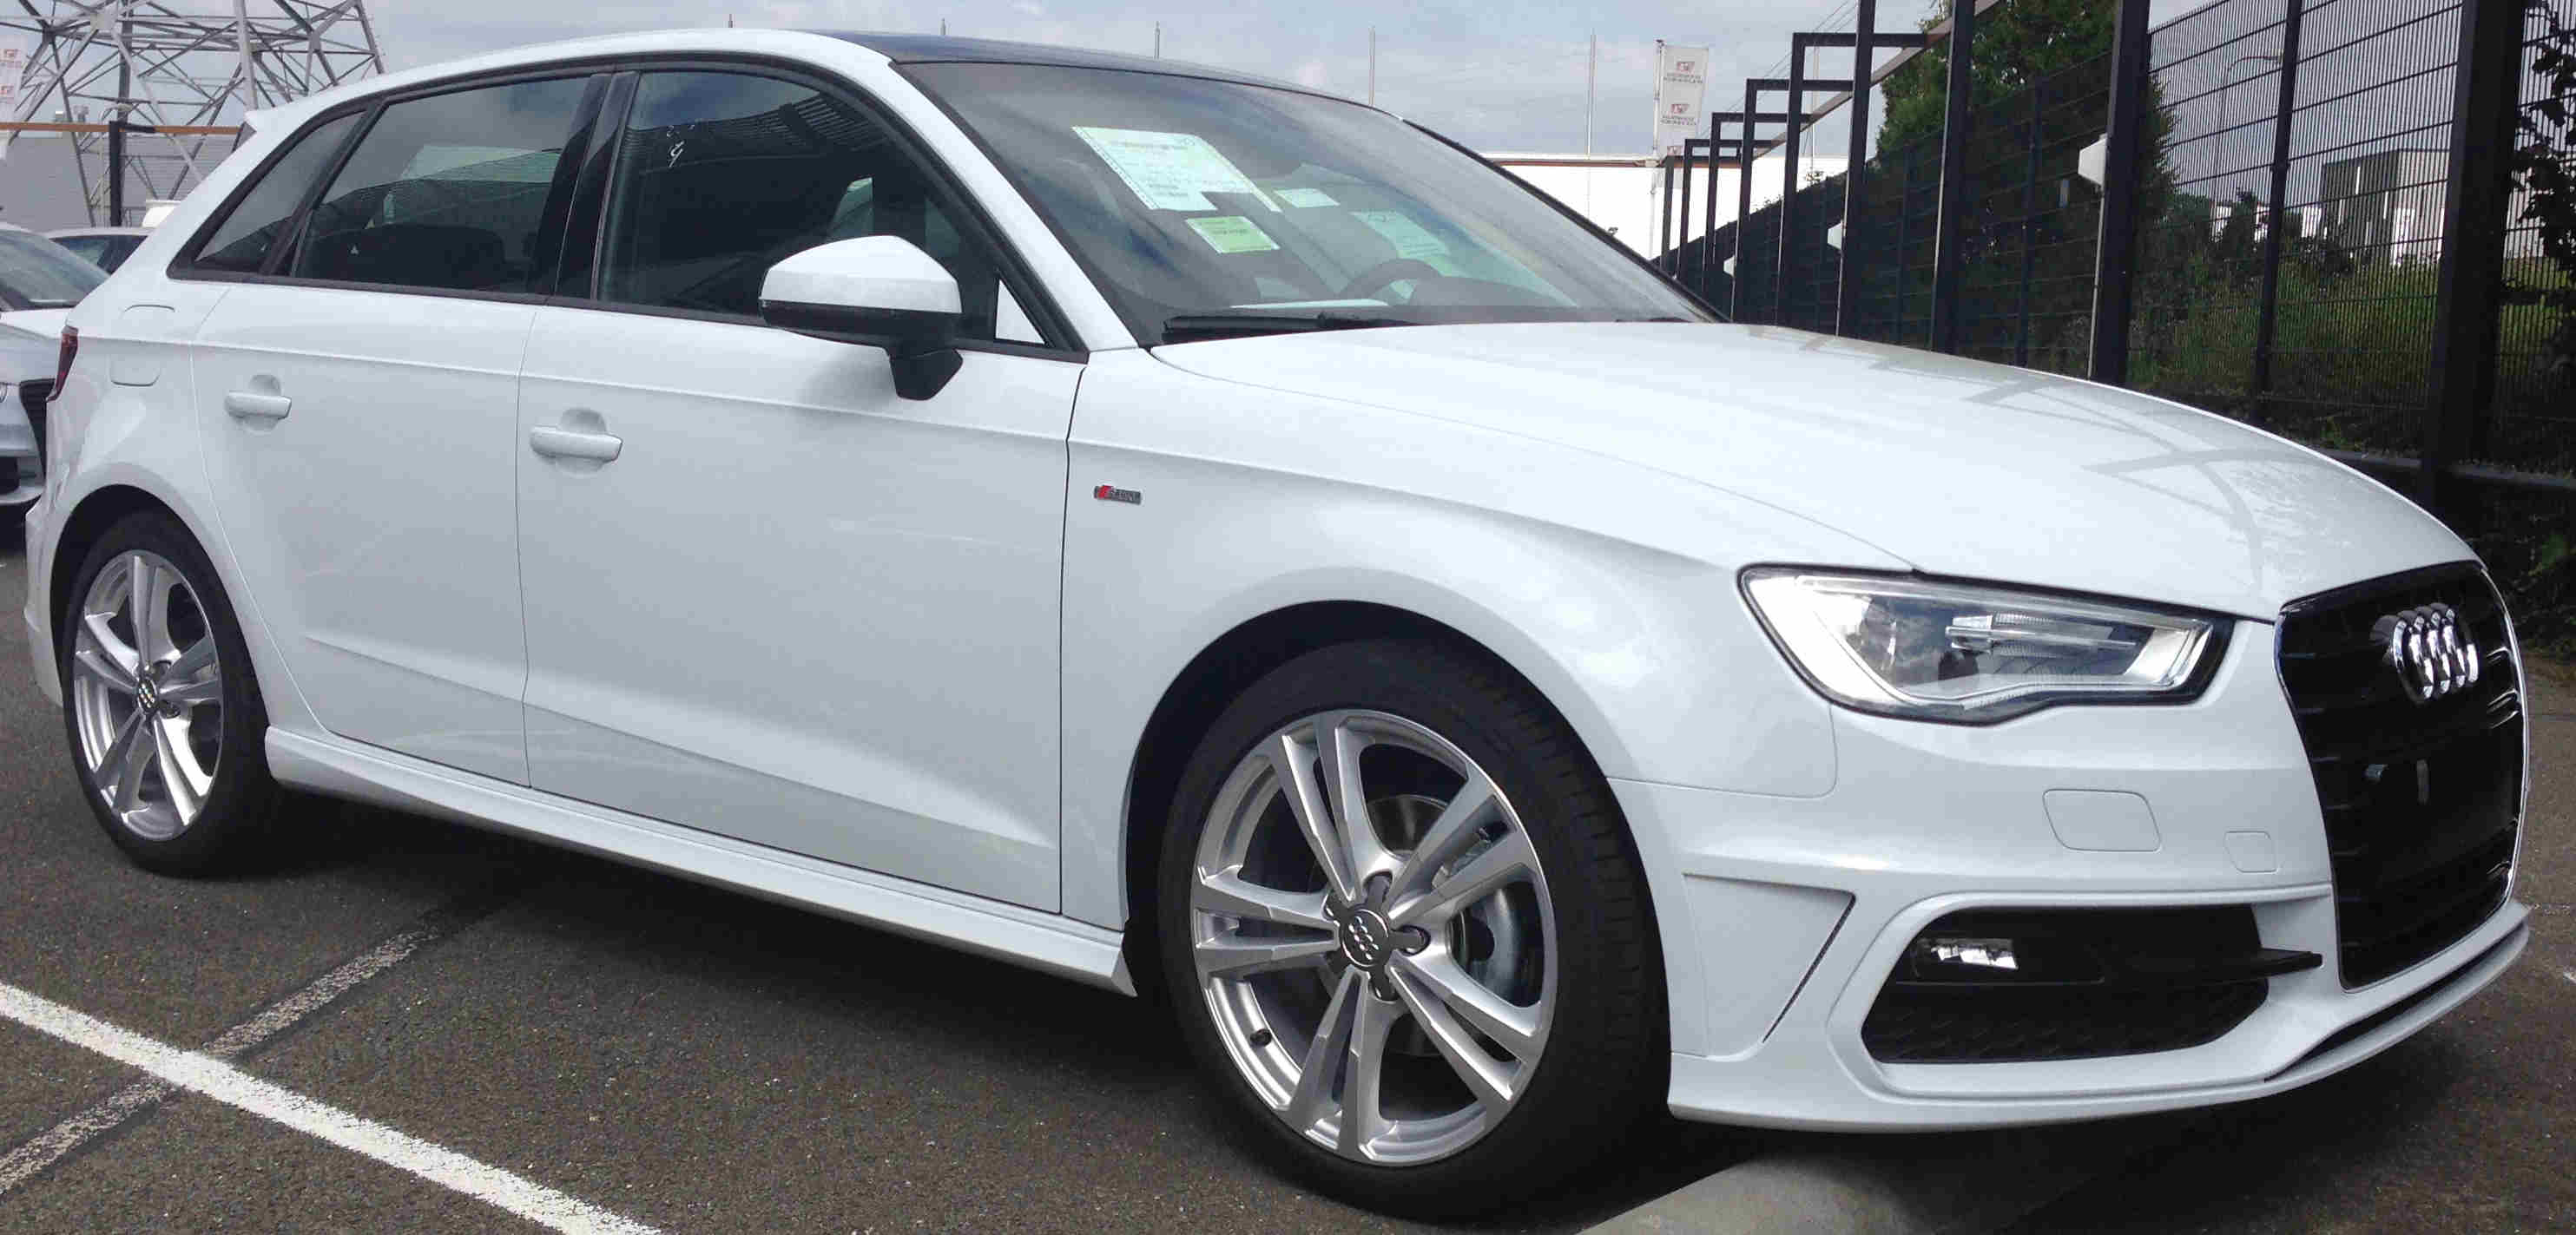 audi a3 sportback s line 2014 eu neuwagen reimport direktimport schweiz ambition 2 0 tdi 150 ps. Black Bedroom Furniture Sets. Home Design Ideas